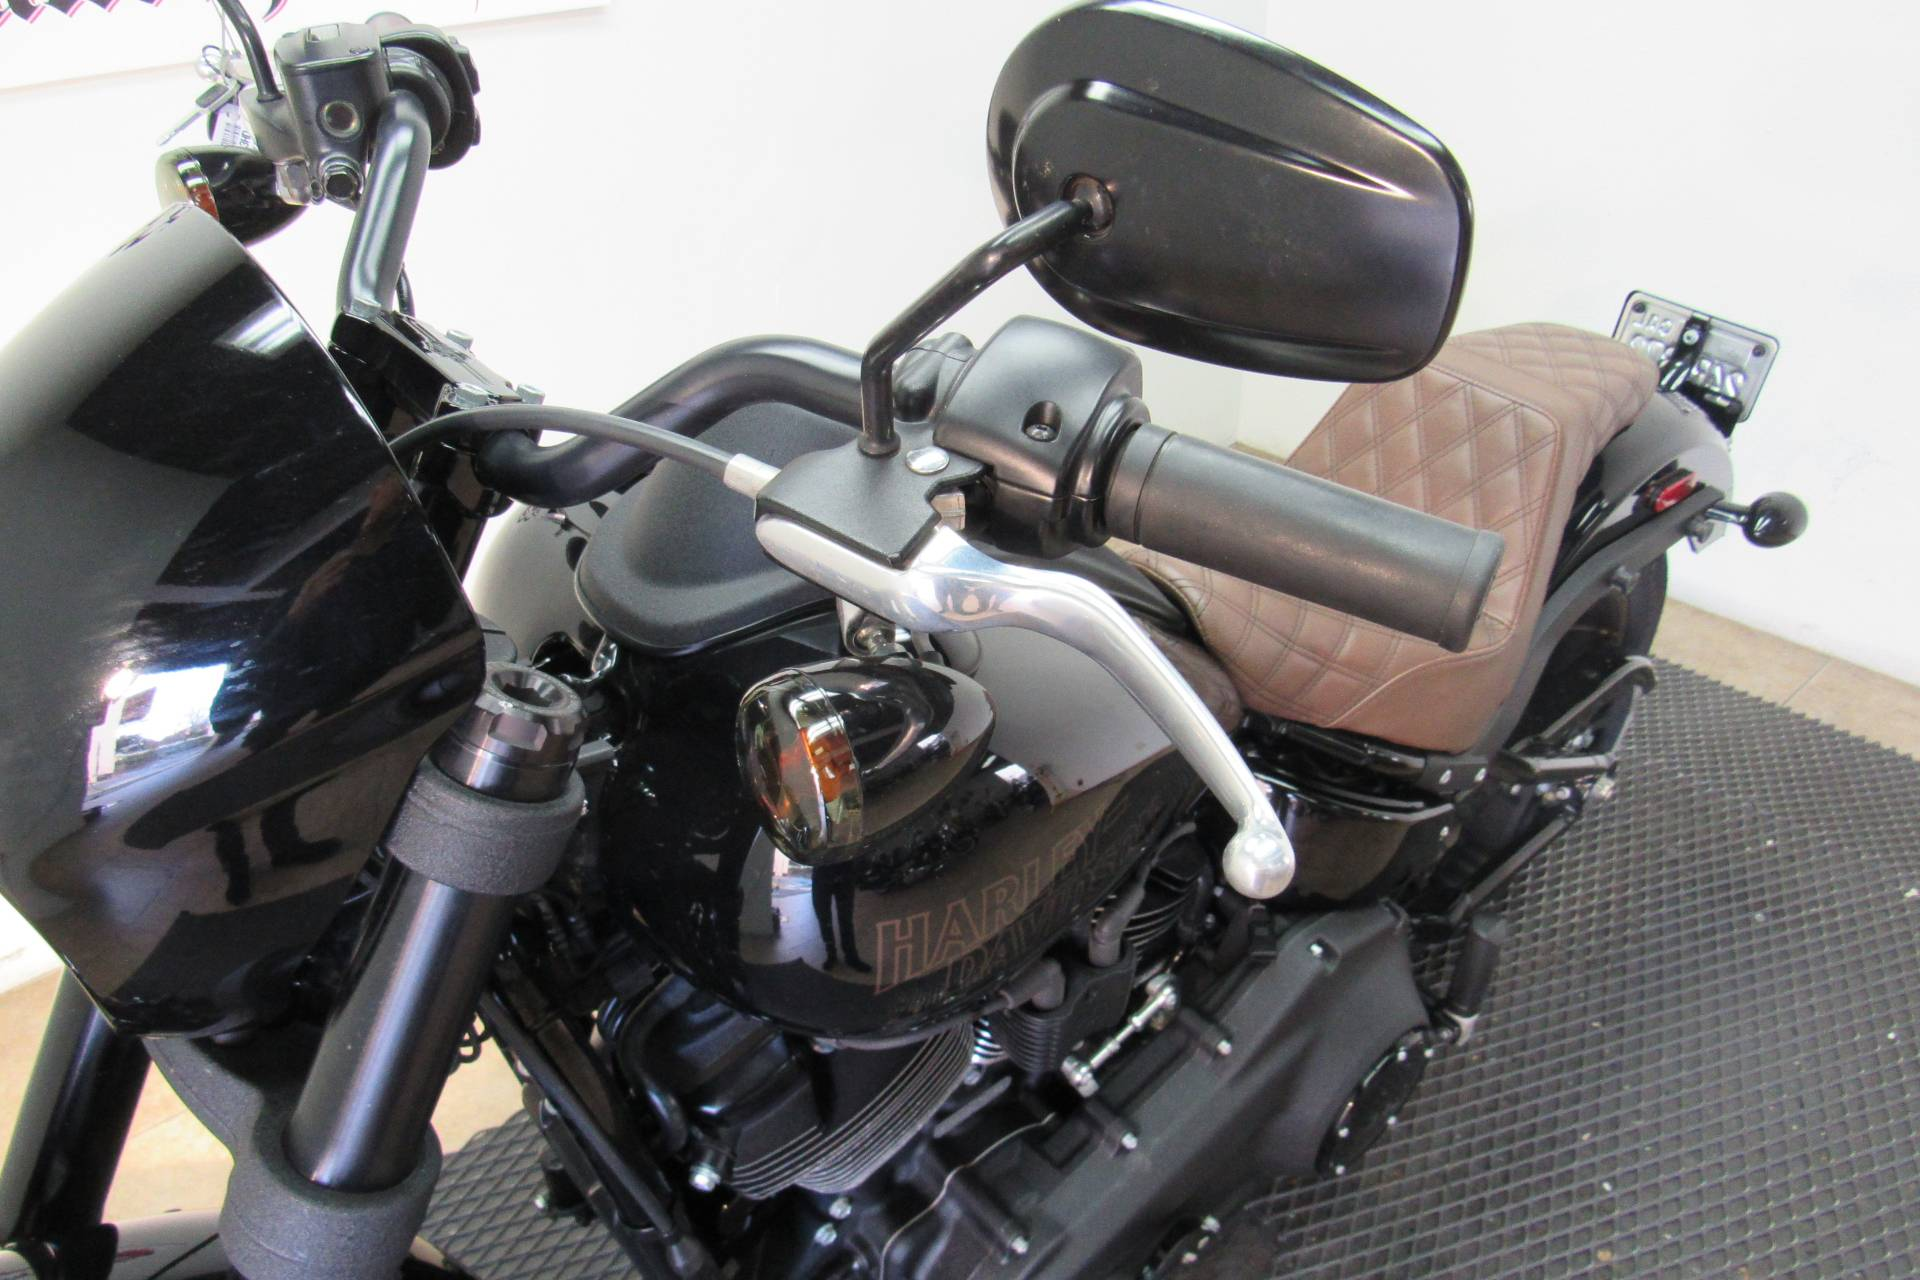 2020 Harley-Davidson Low Rider®S in Temecula, California - Photo 21